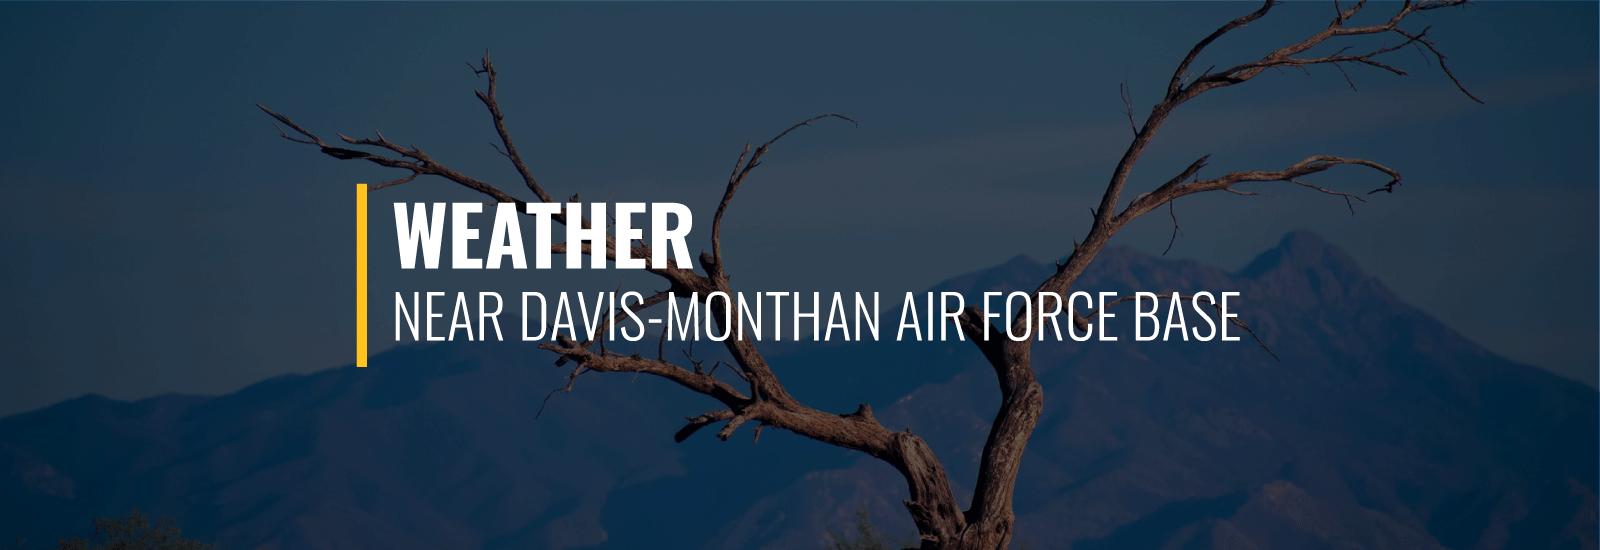 Davis-Monthan AFB Weather